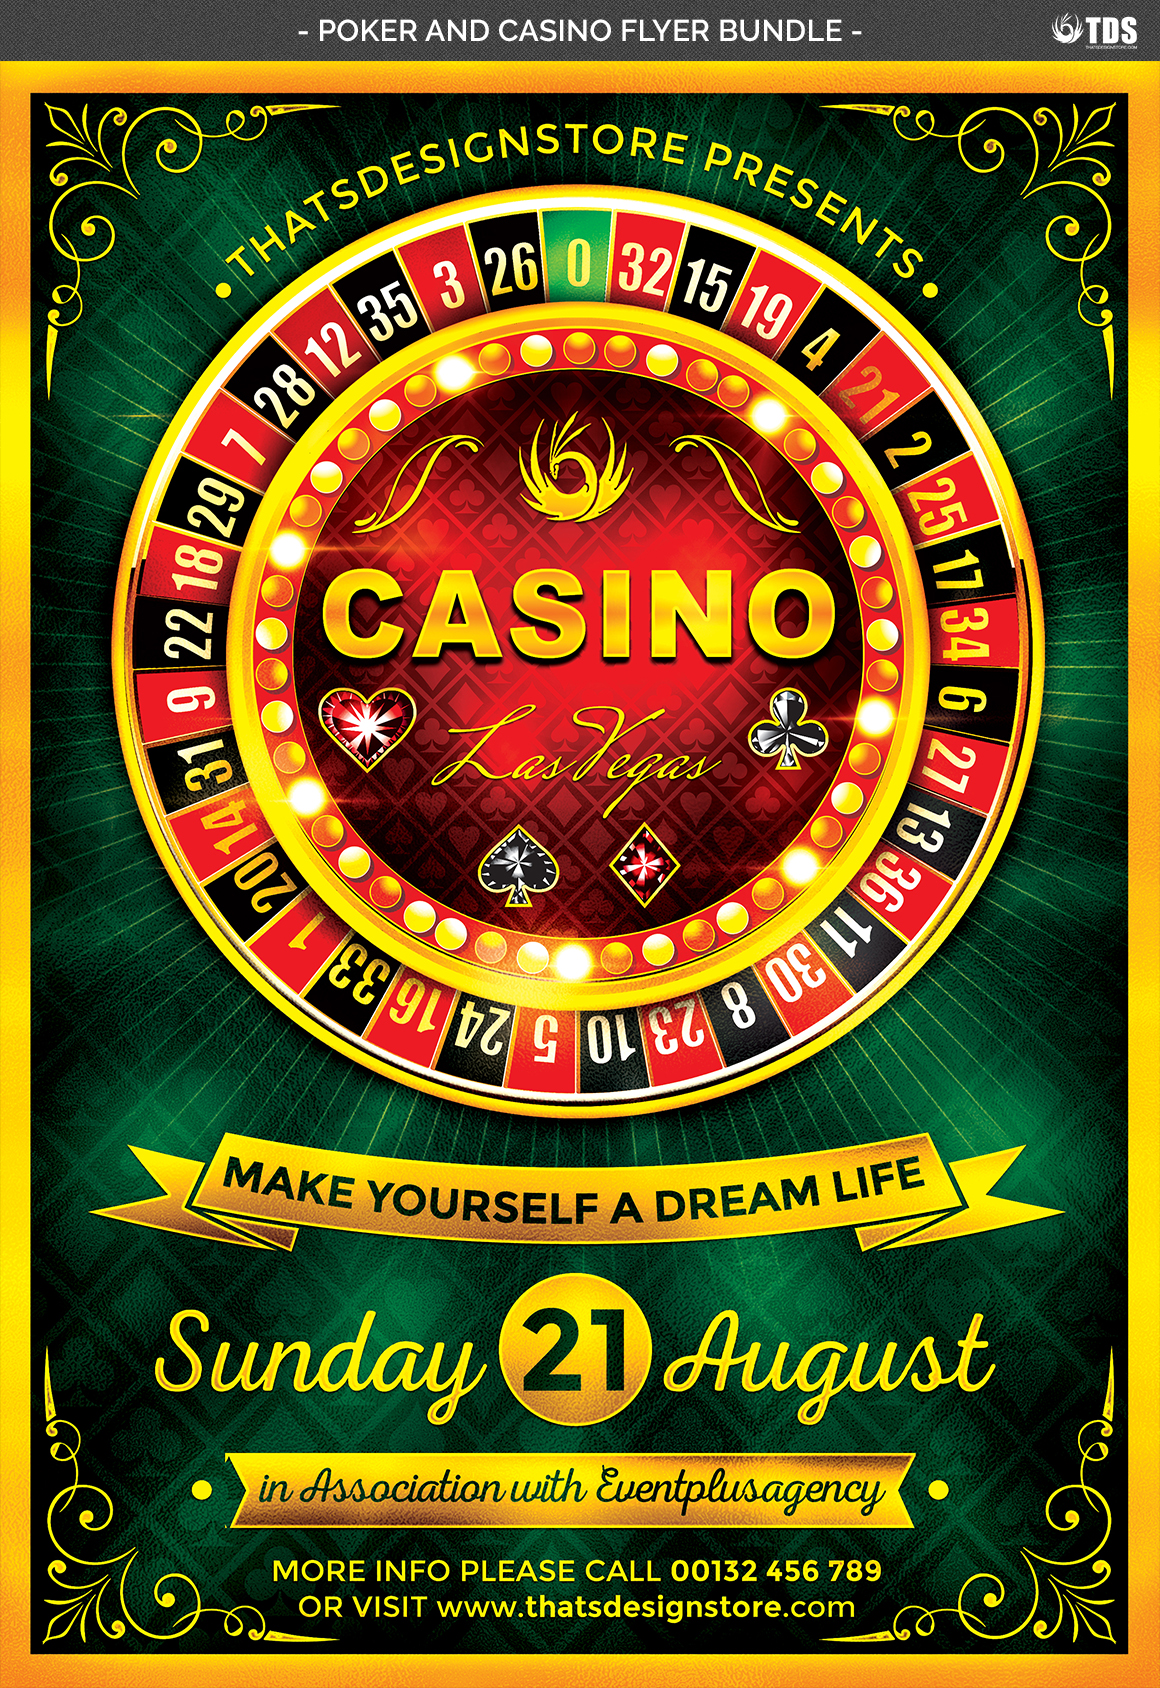 Poker and Casino Flyer Bundle example image 8